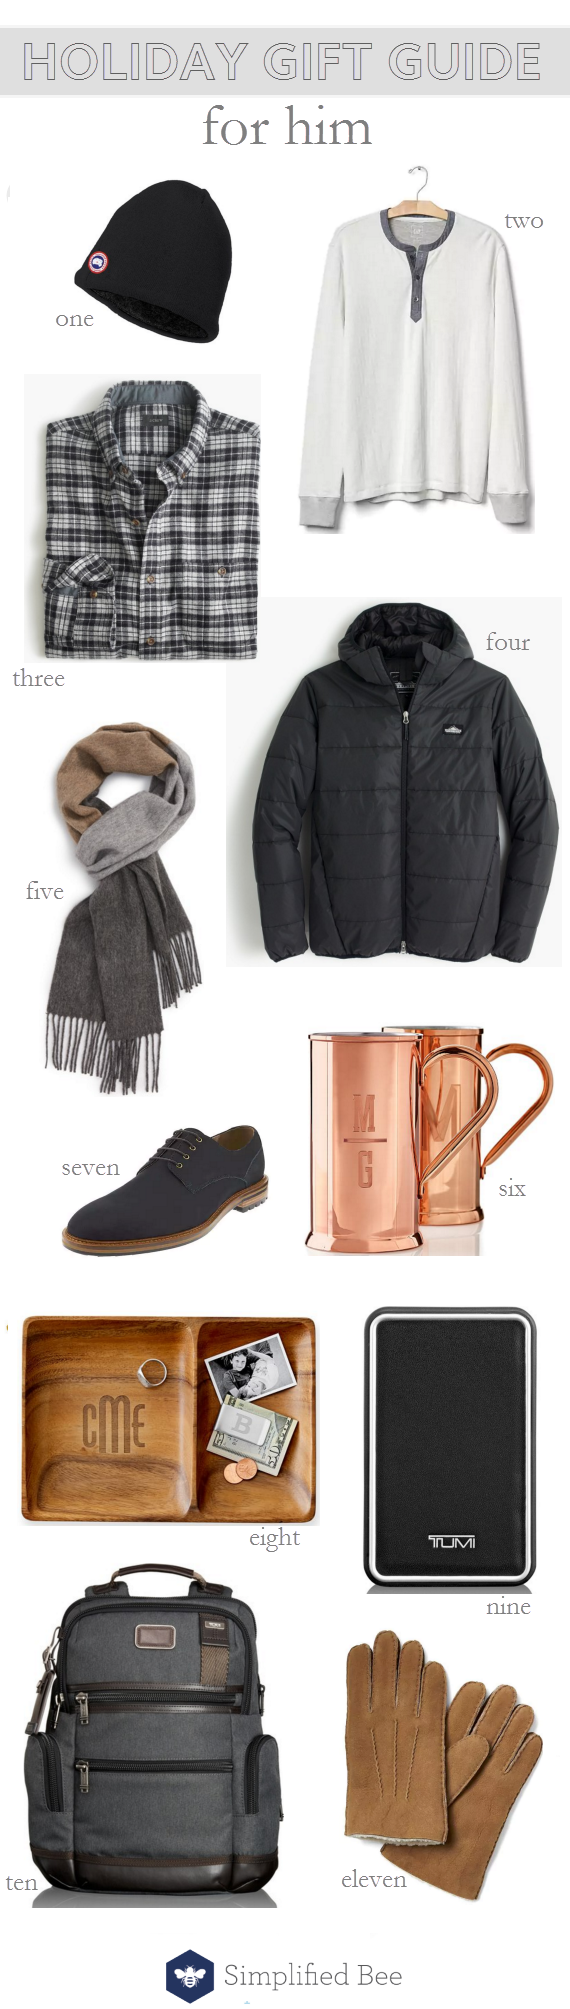 holiday gift guide 2016 // for him // via @simplifiedbee